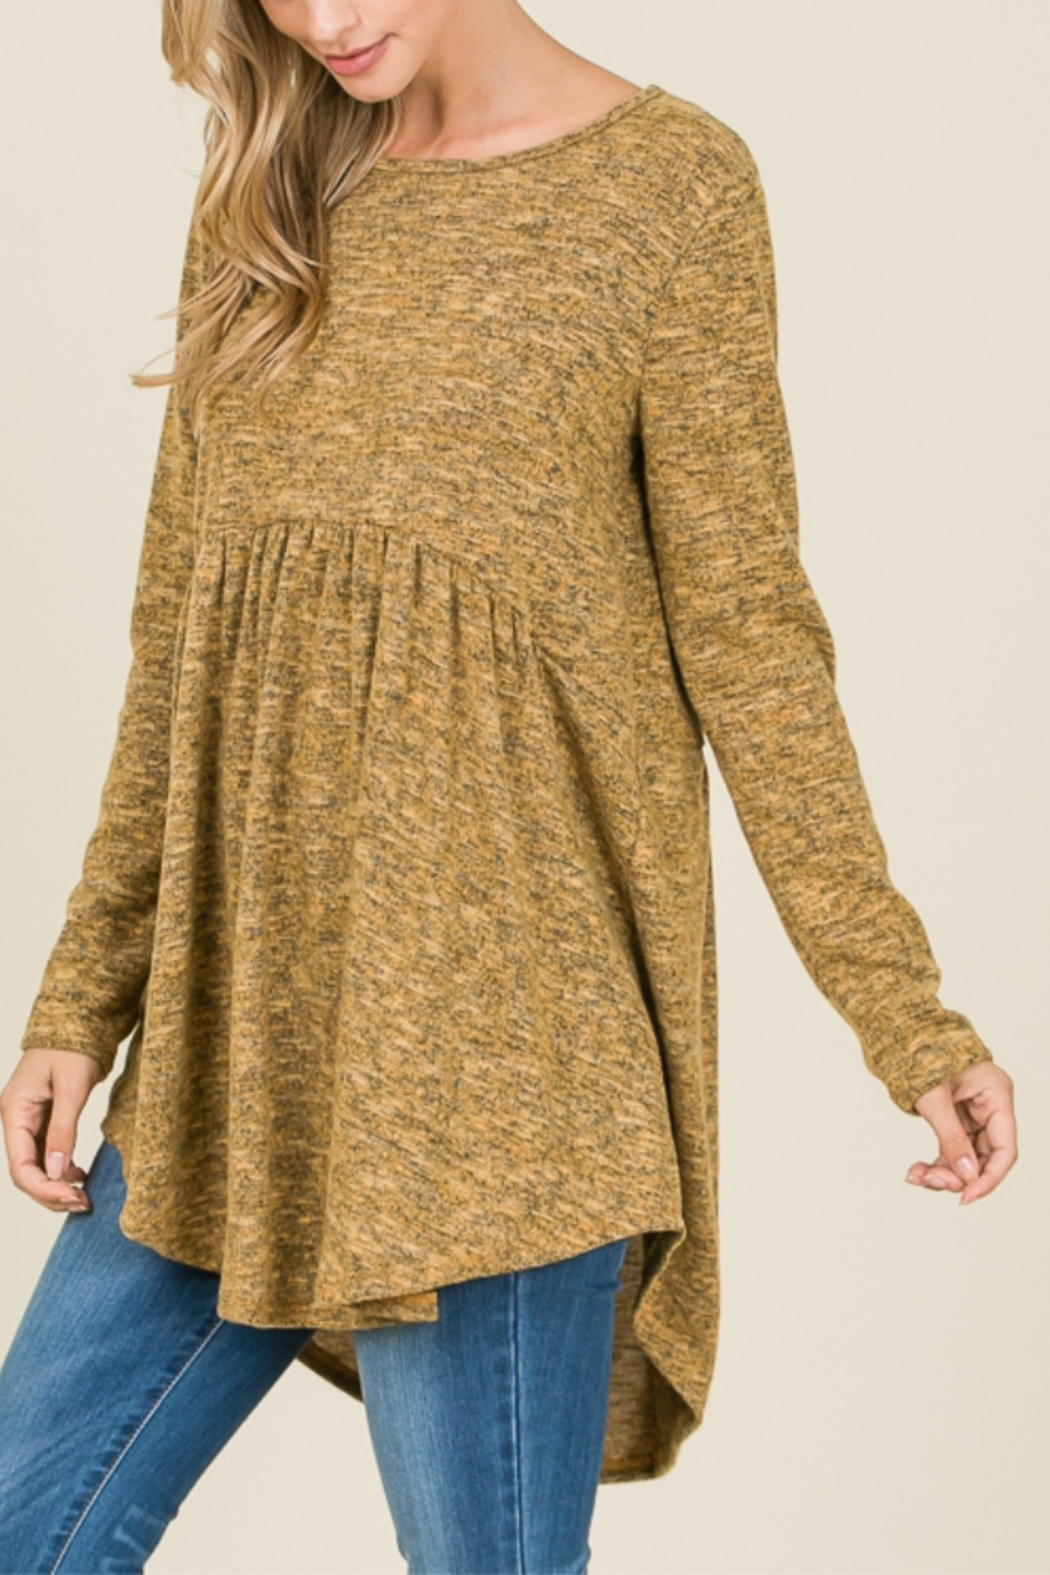 Reborn J Long Sleeve Peplum Sweater {{OLIVE}} - Main Image